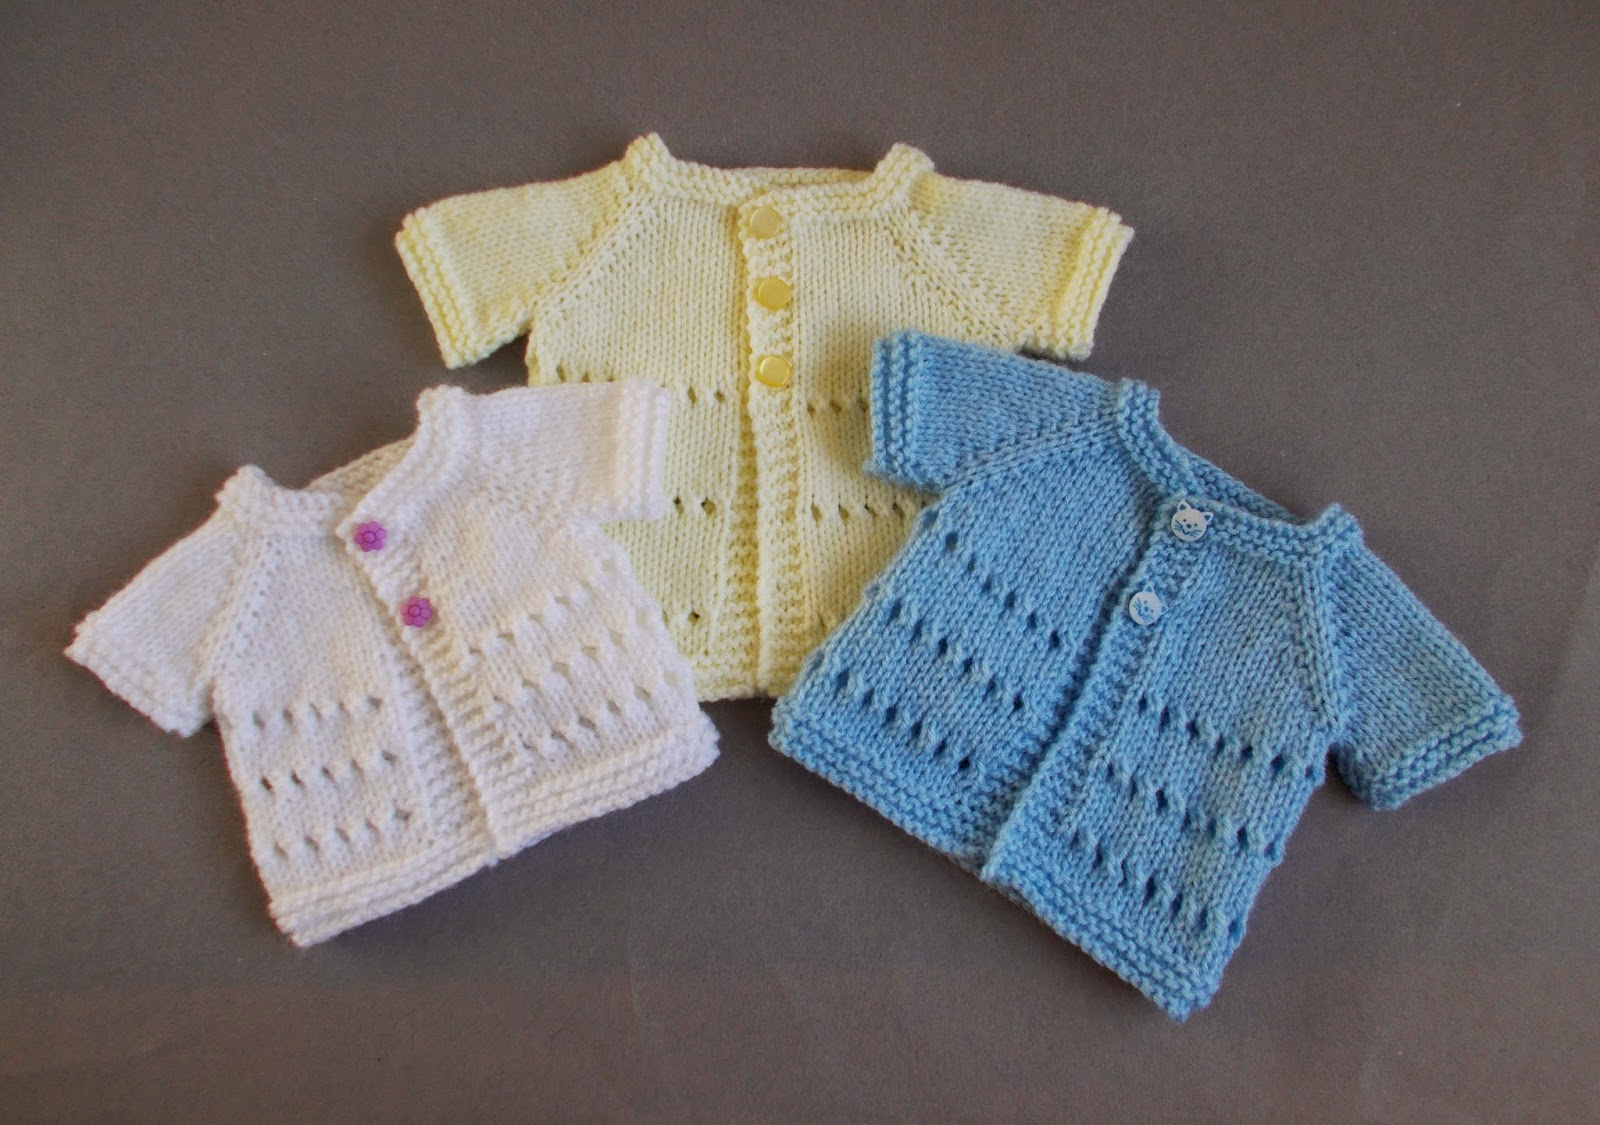 mariannas lazy daisy days: Little Jay ~ Premature Baby Cardigan Jacket